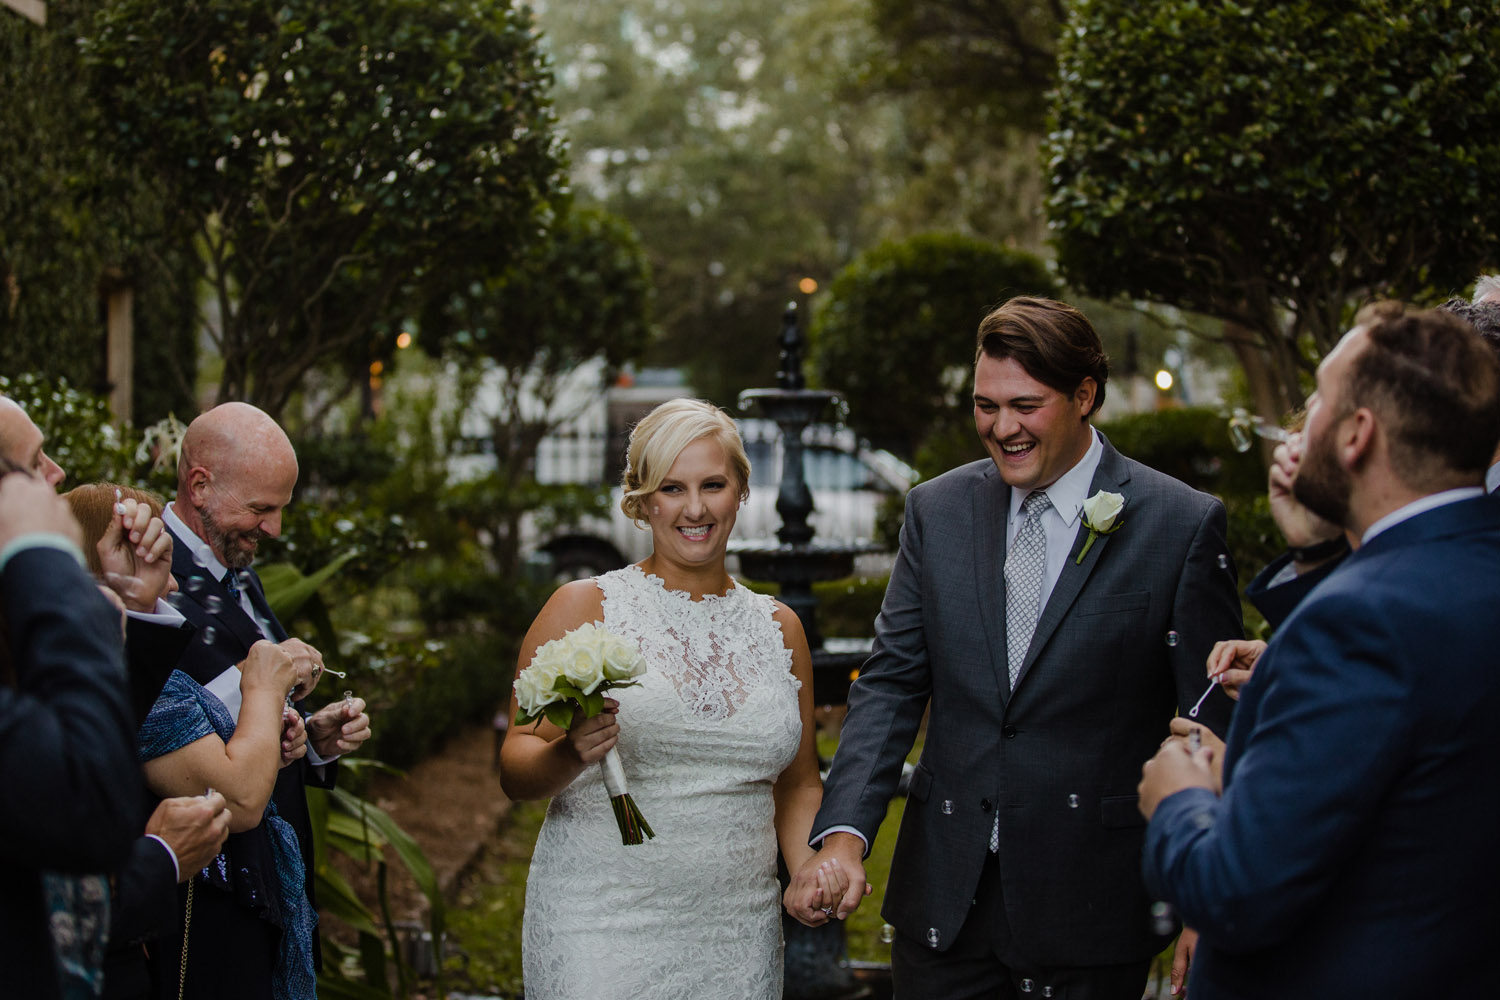 Atlanta Wedding Photographers Savannah Elopement Photographer Destination Photography_1037.jpg